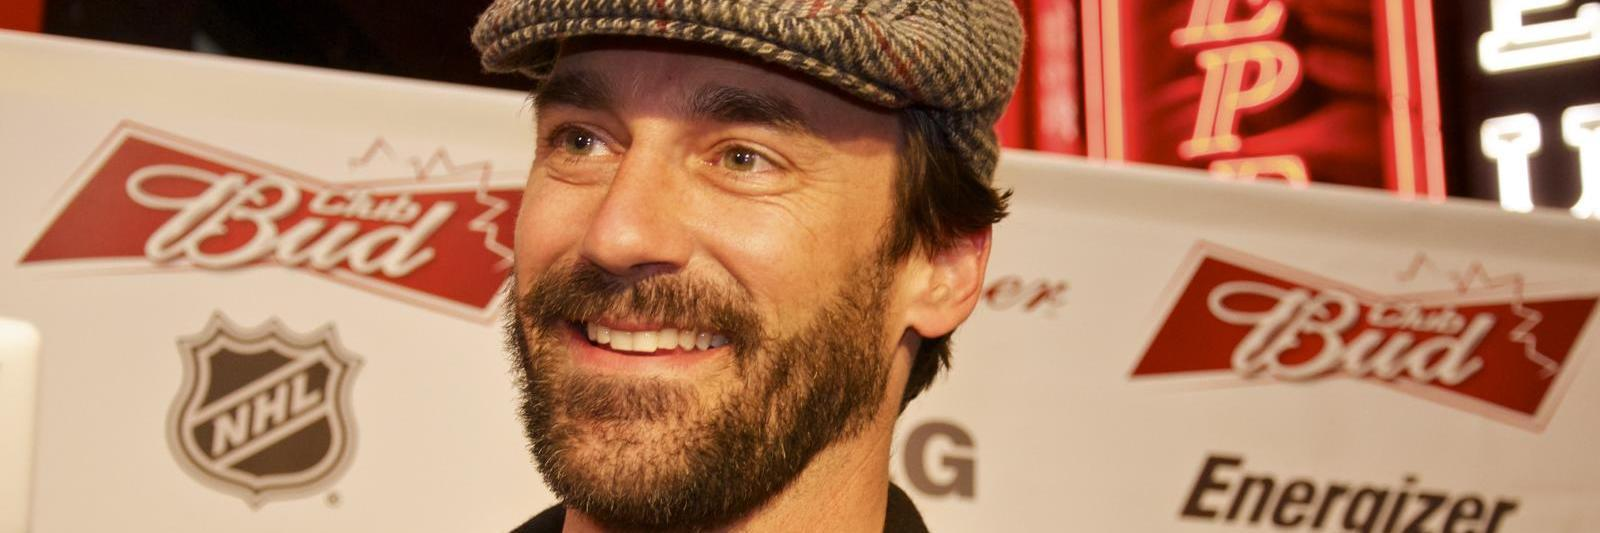 Jon Hamm wearing a hat.